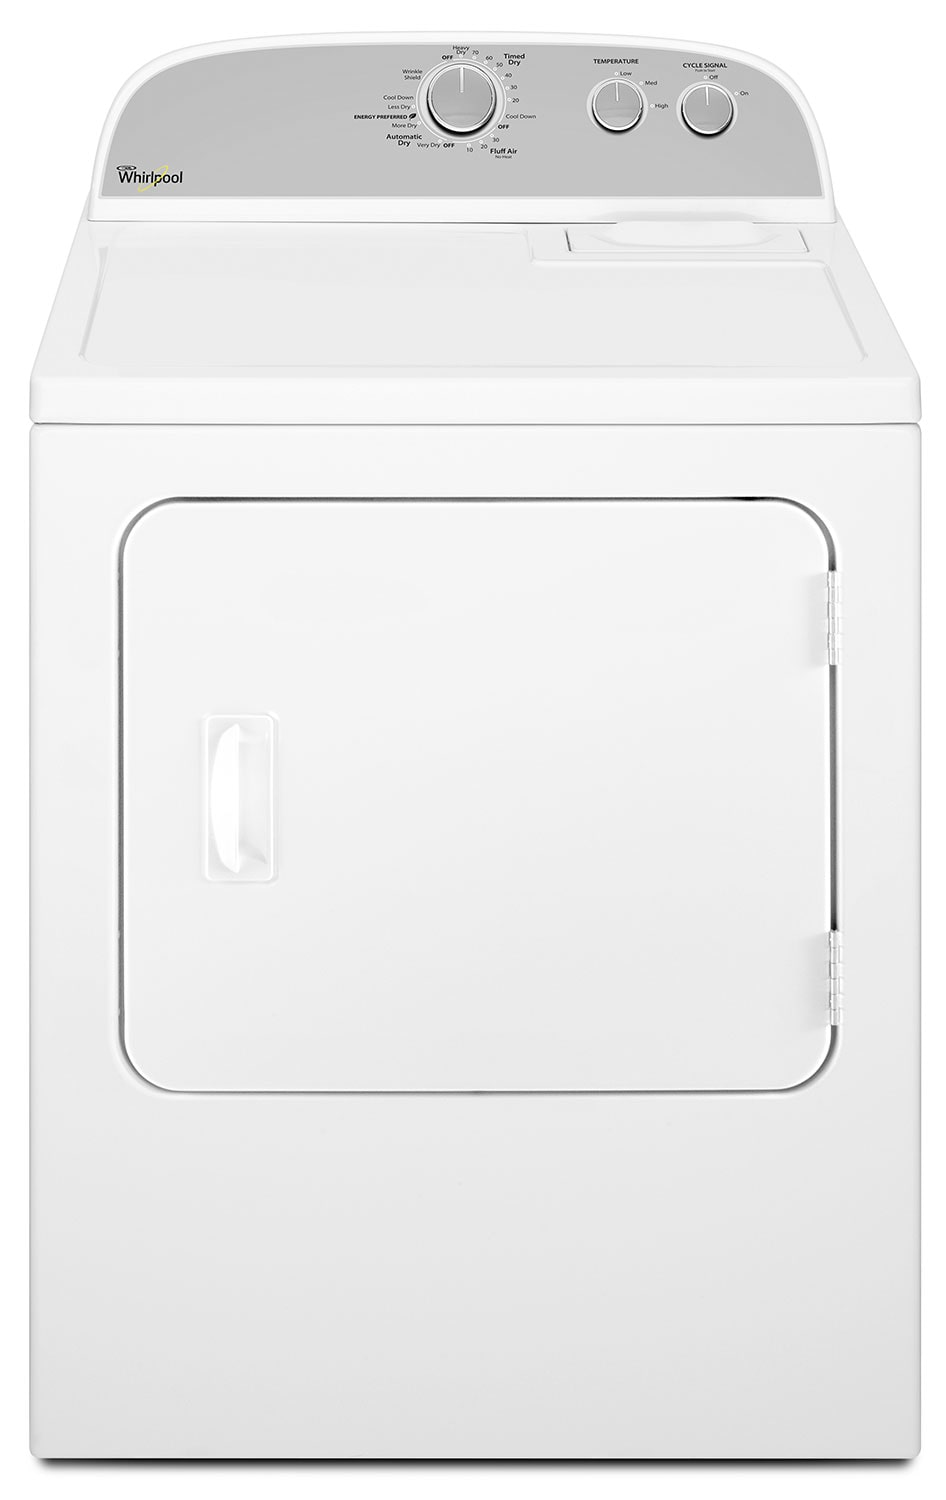 Whirlpool 7.0 Cu. Ft. Electric Dryer – YWED4815EW